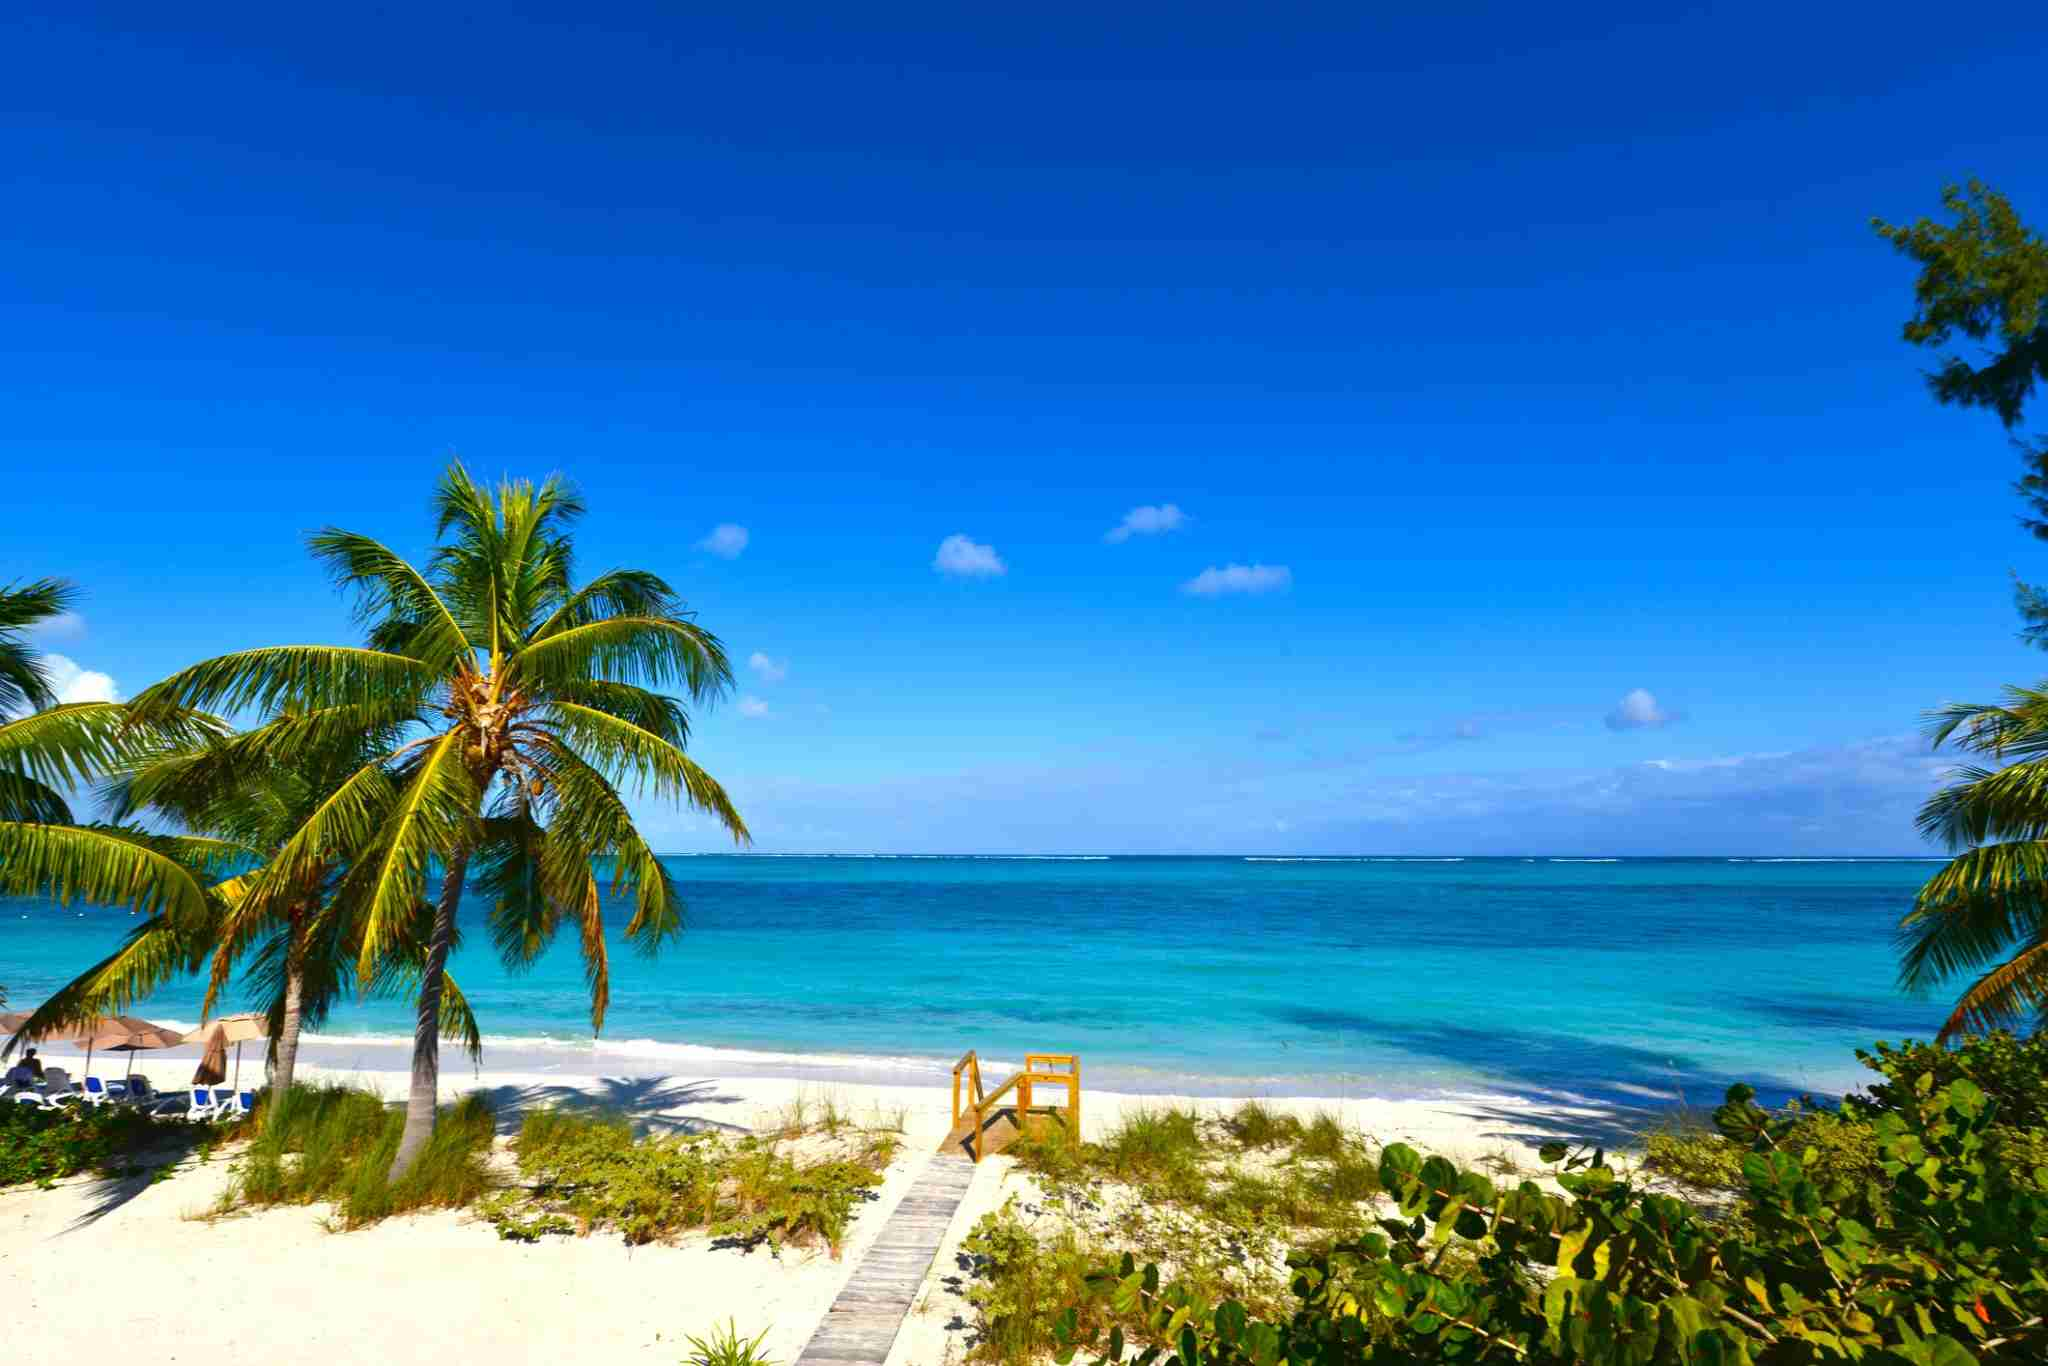 A sunny day at Grace Bay Beach in Providenciales, Turks and Cacos.